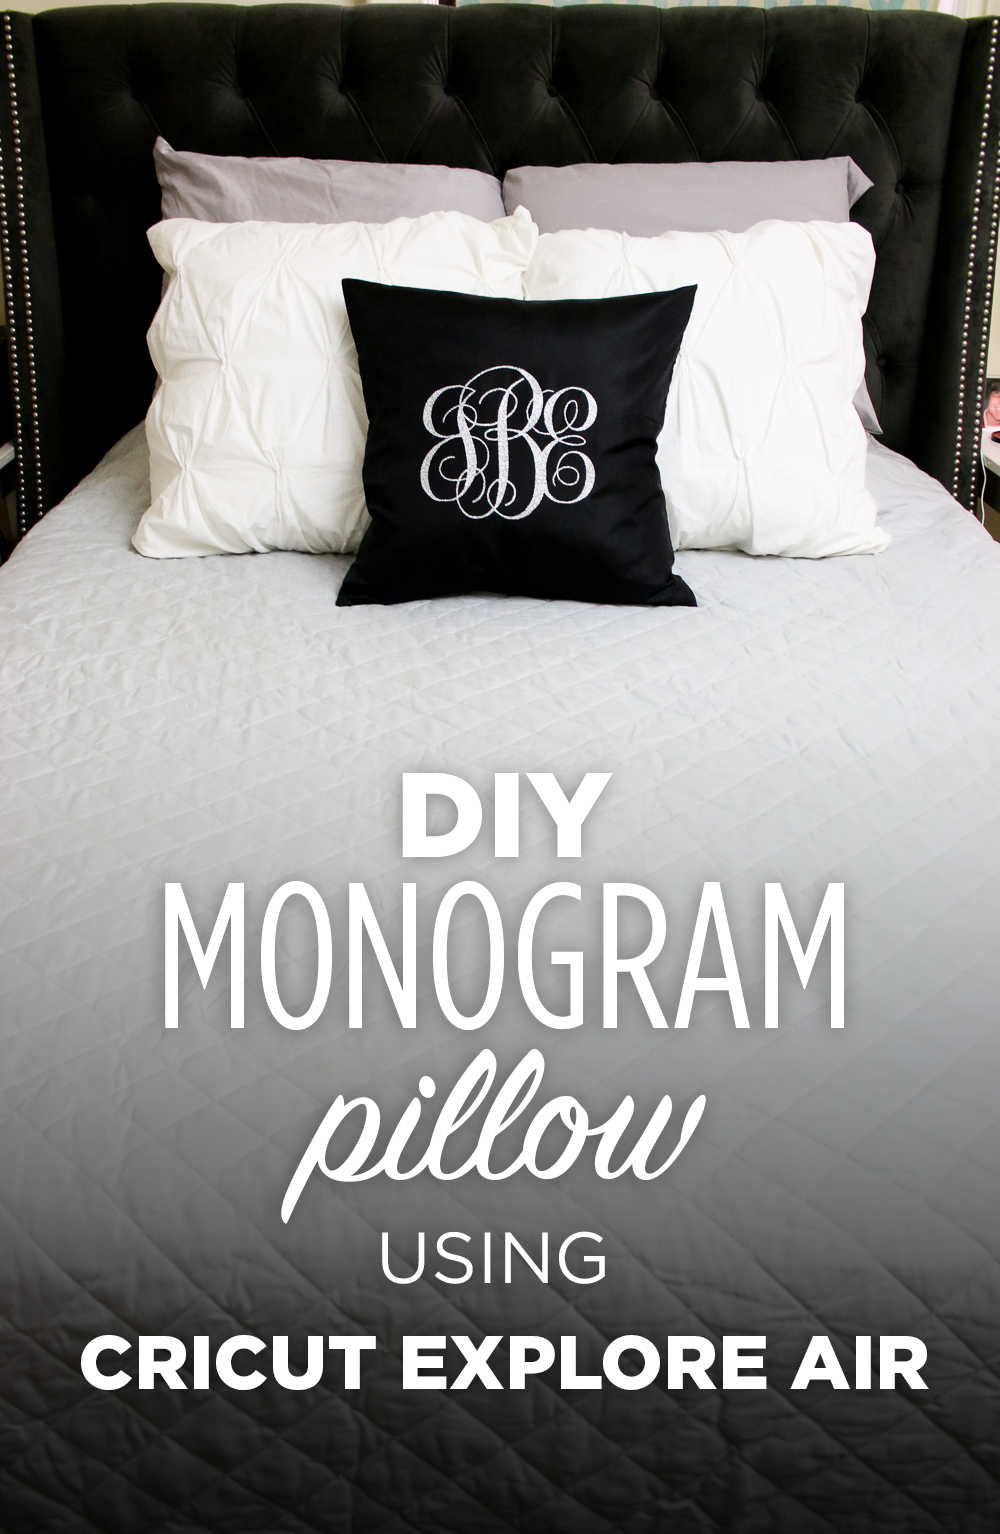 See how easy it is to make your own custom monogrammed pillow using the Cricut Explore Air! @cricut #mycricutstory